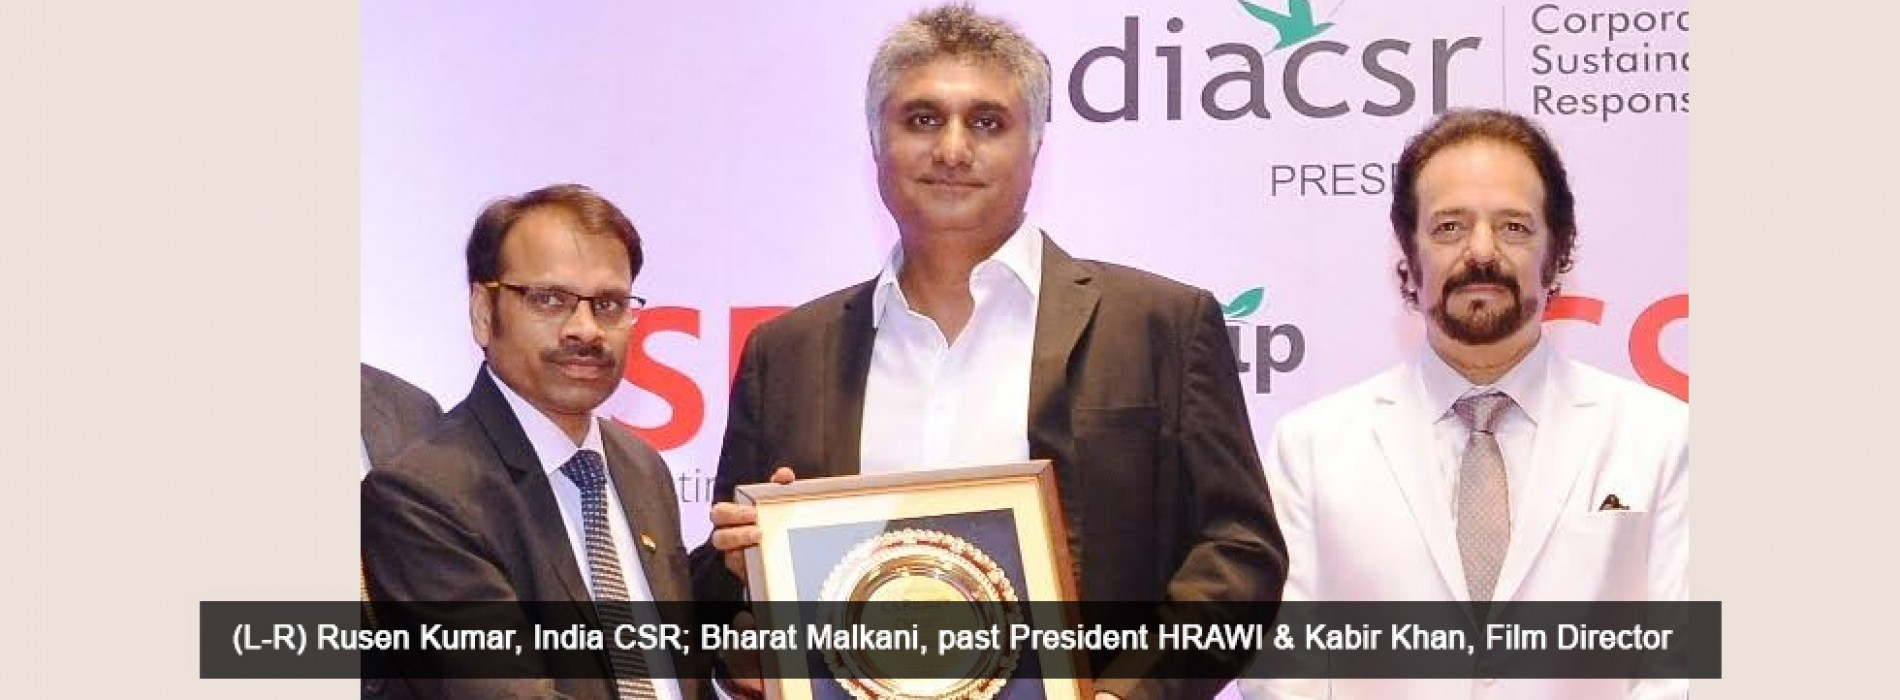 HRAWI's Project Pickle initiative receives accolades at India CSR Leadership Summit & Awards 2017